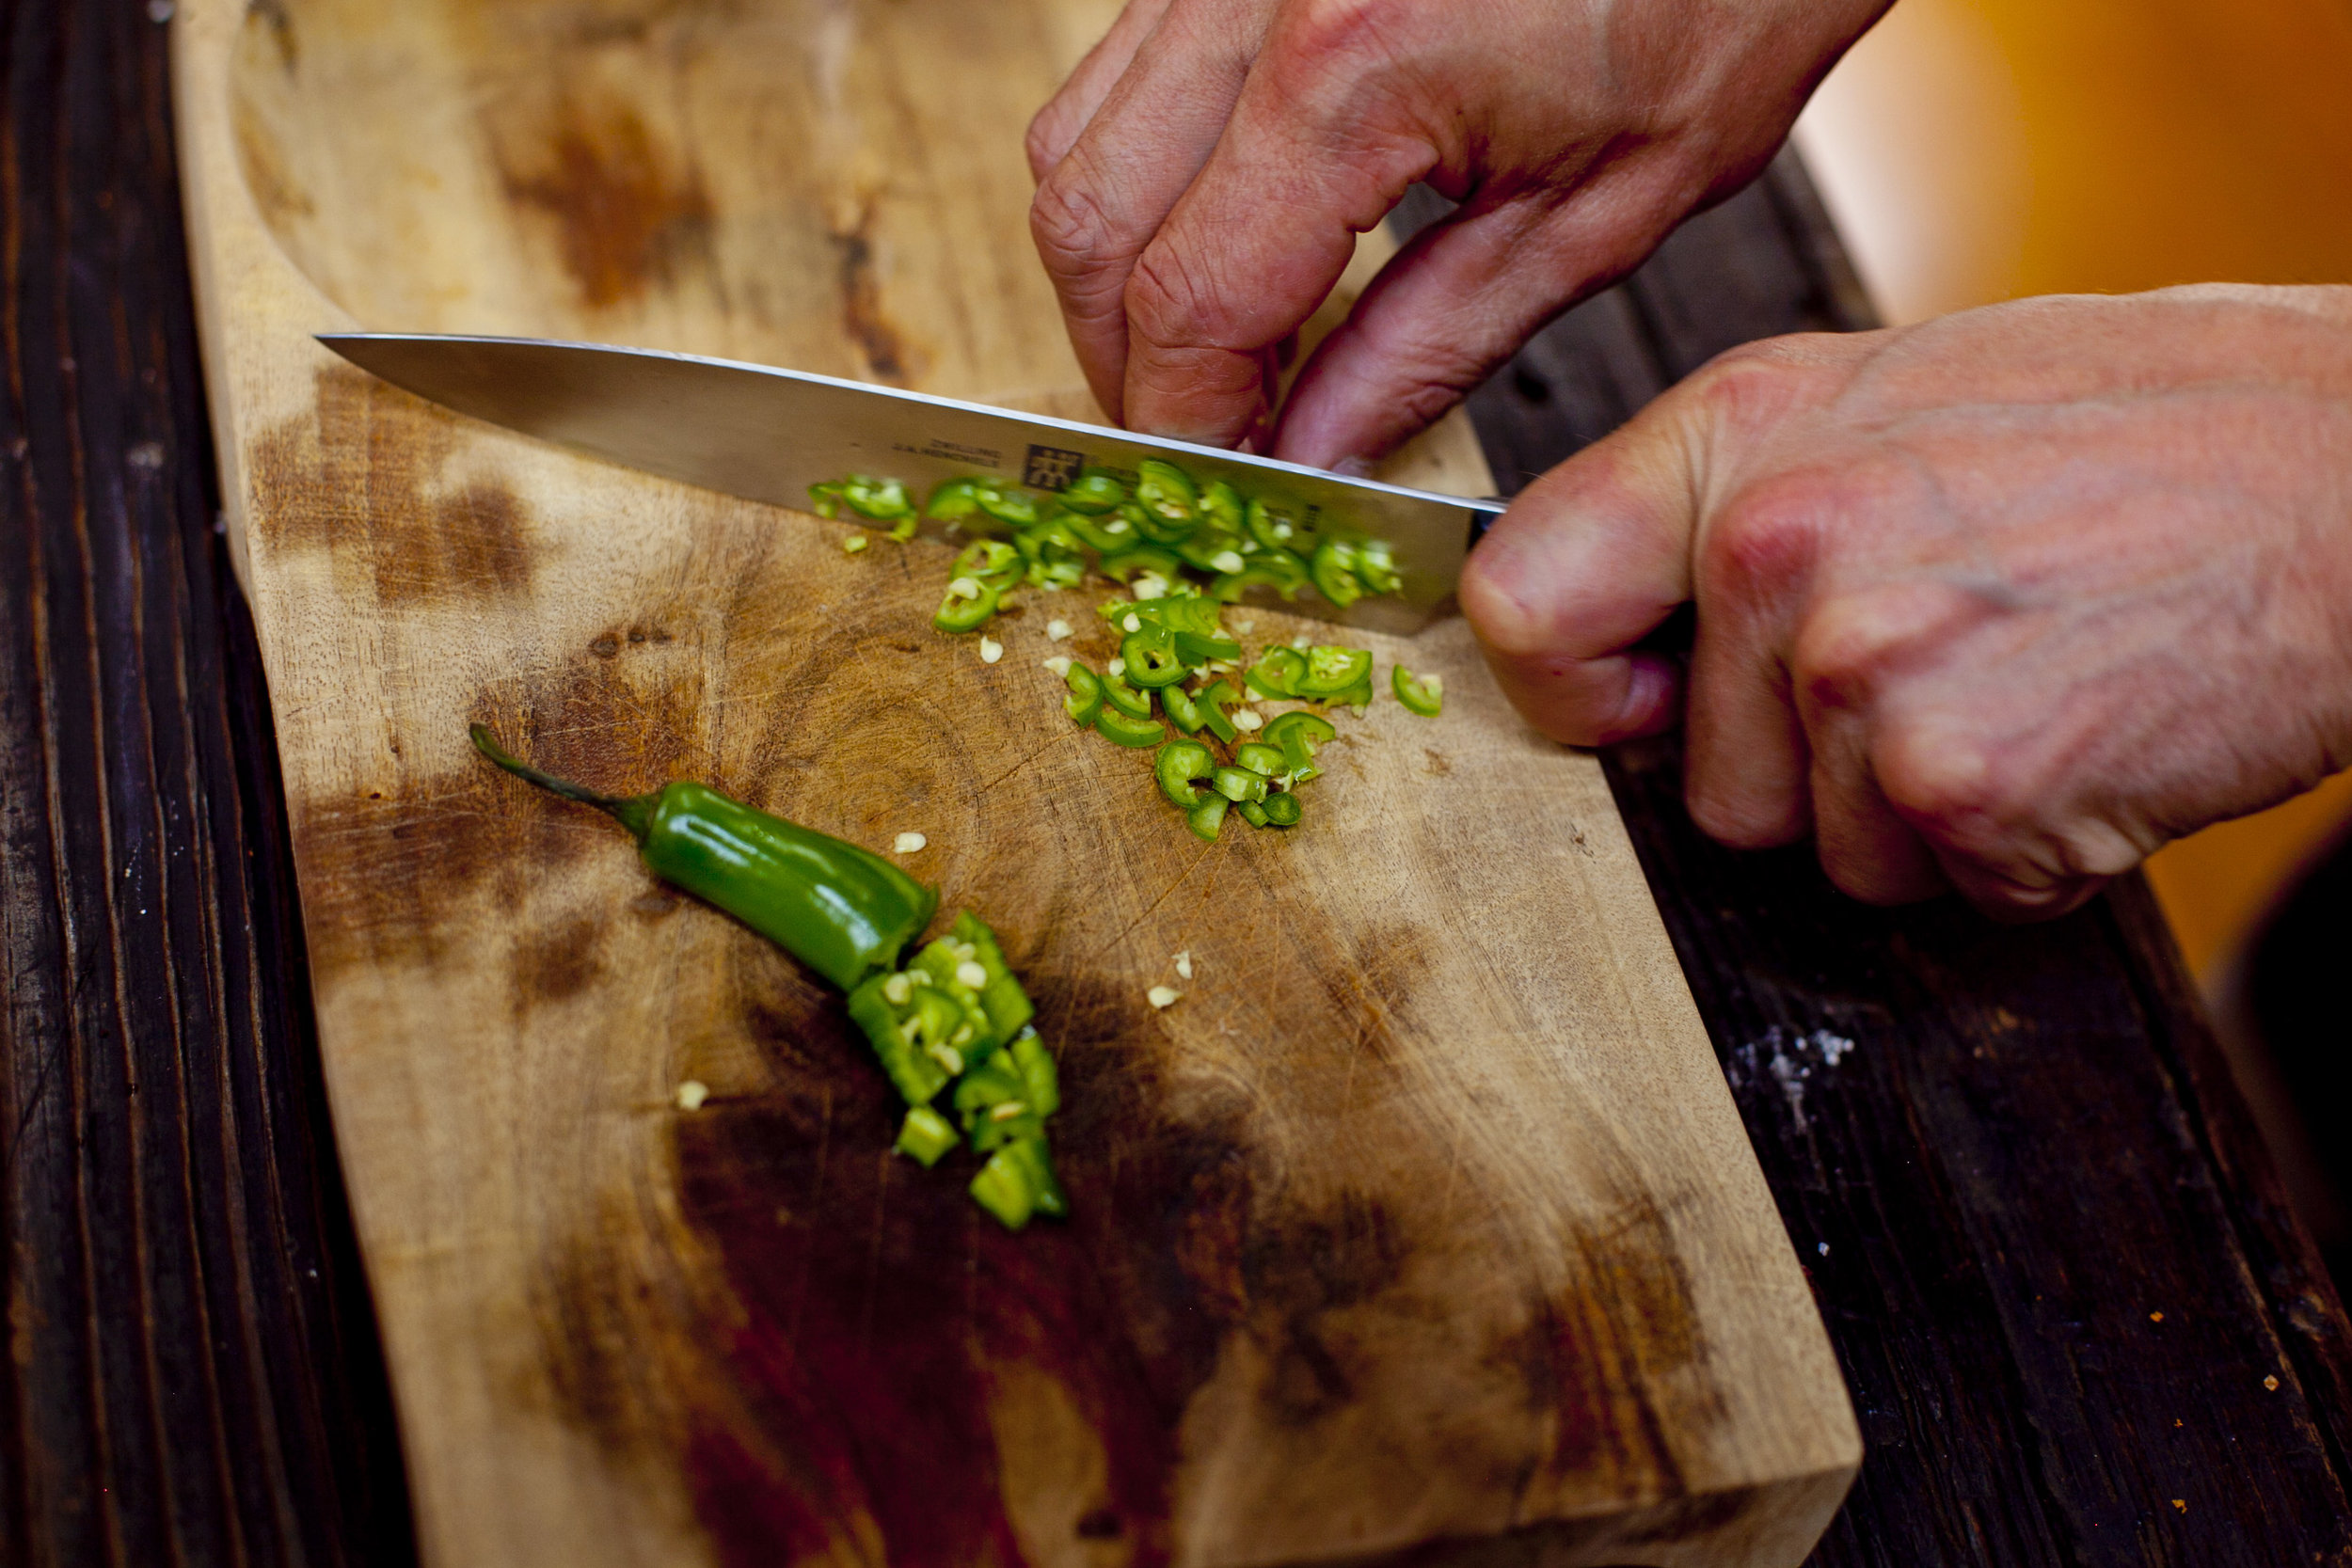 Copy of chopping hot peppers